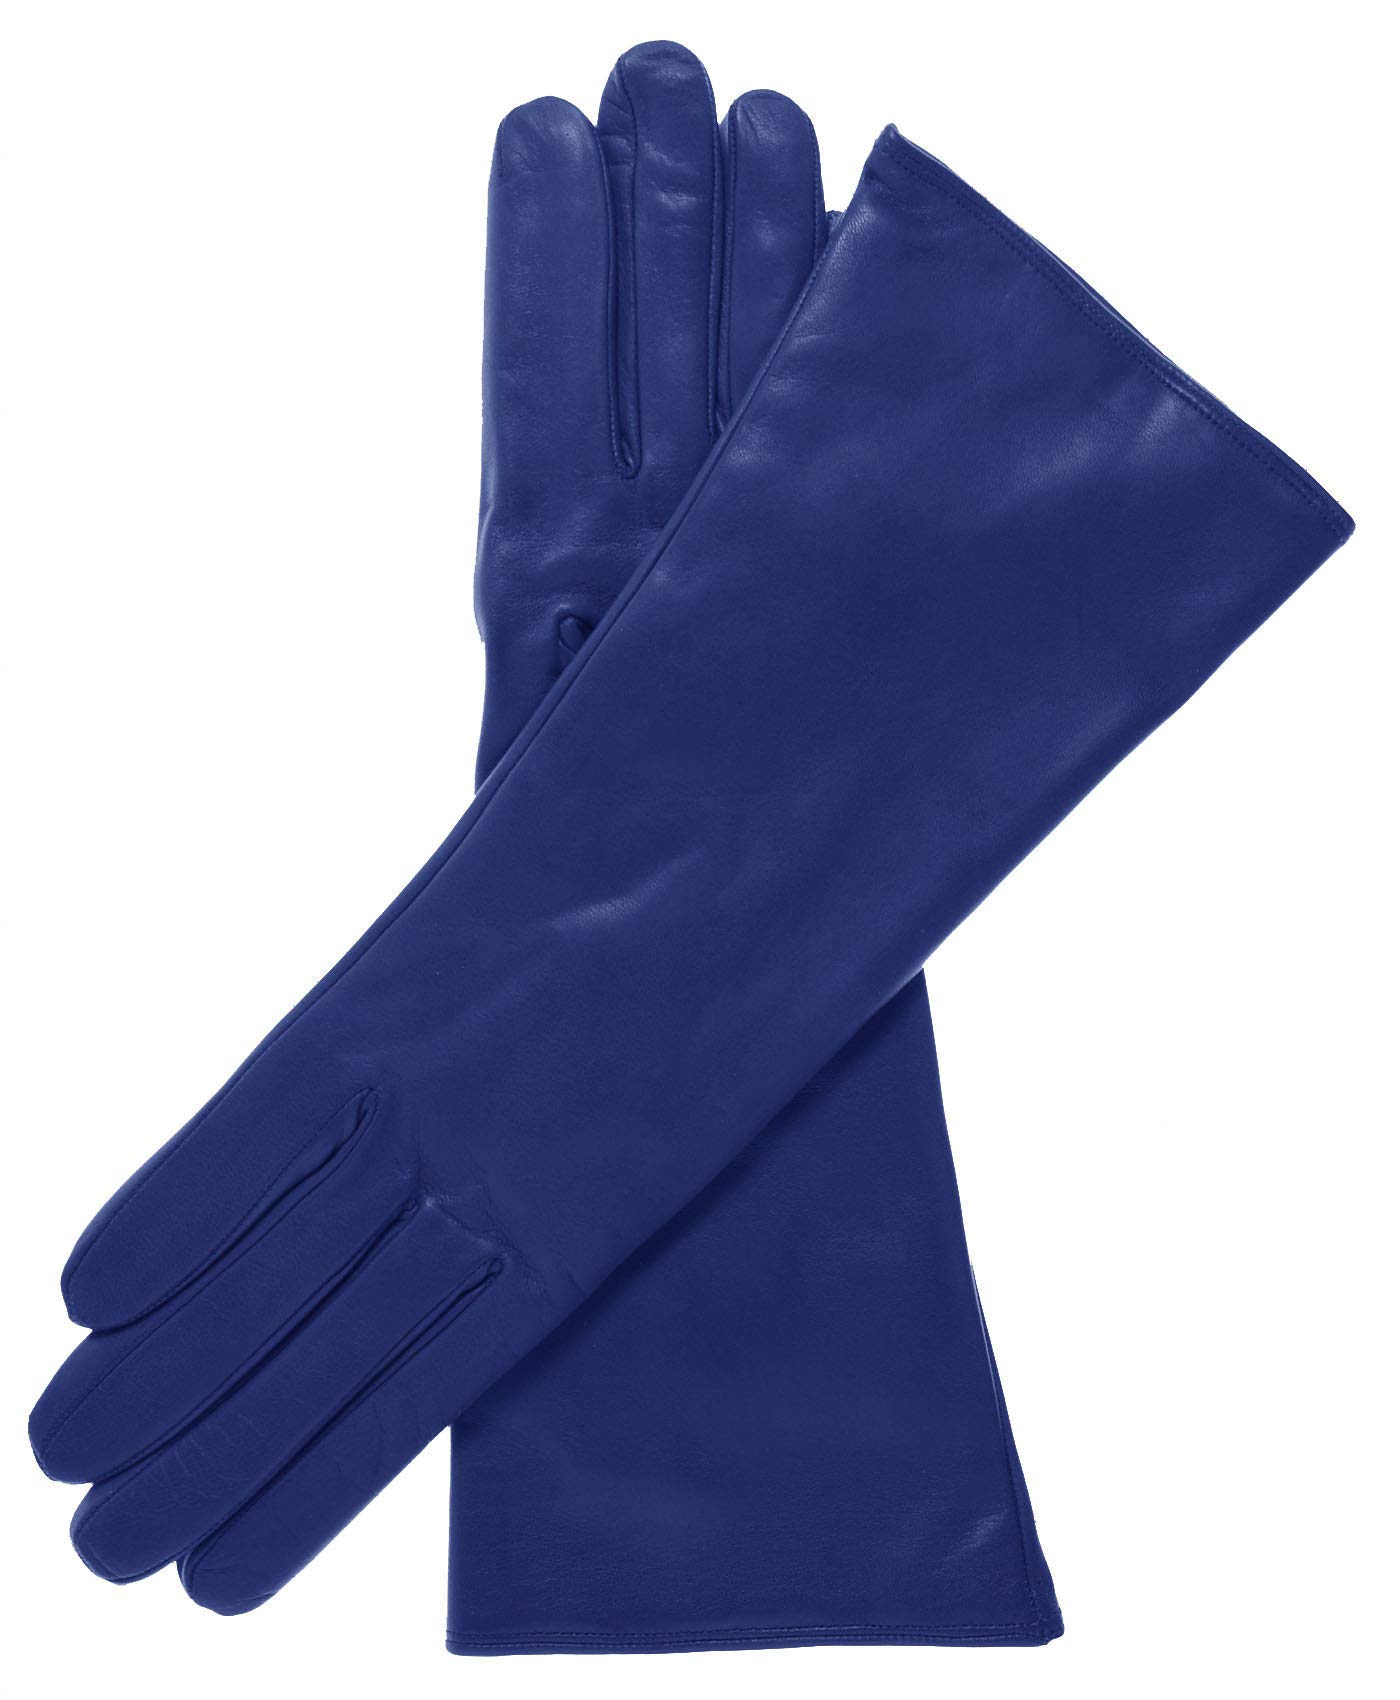 Fratelli Orsini Women's Italian''4 Button Length'' Cashmere Lined Leather Gloves Size 6 Color Blue